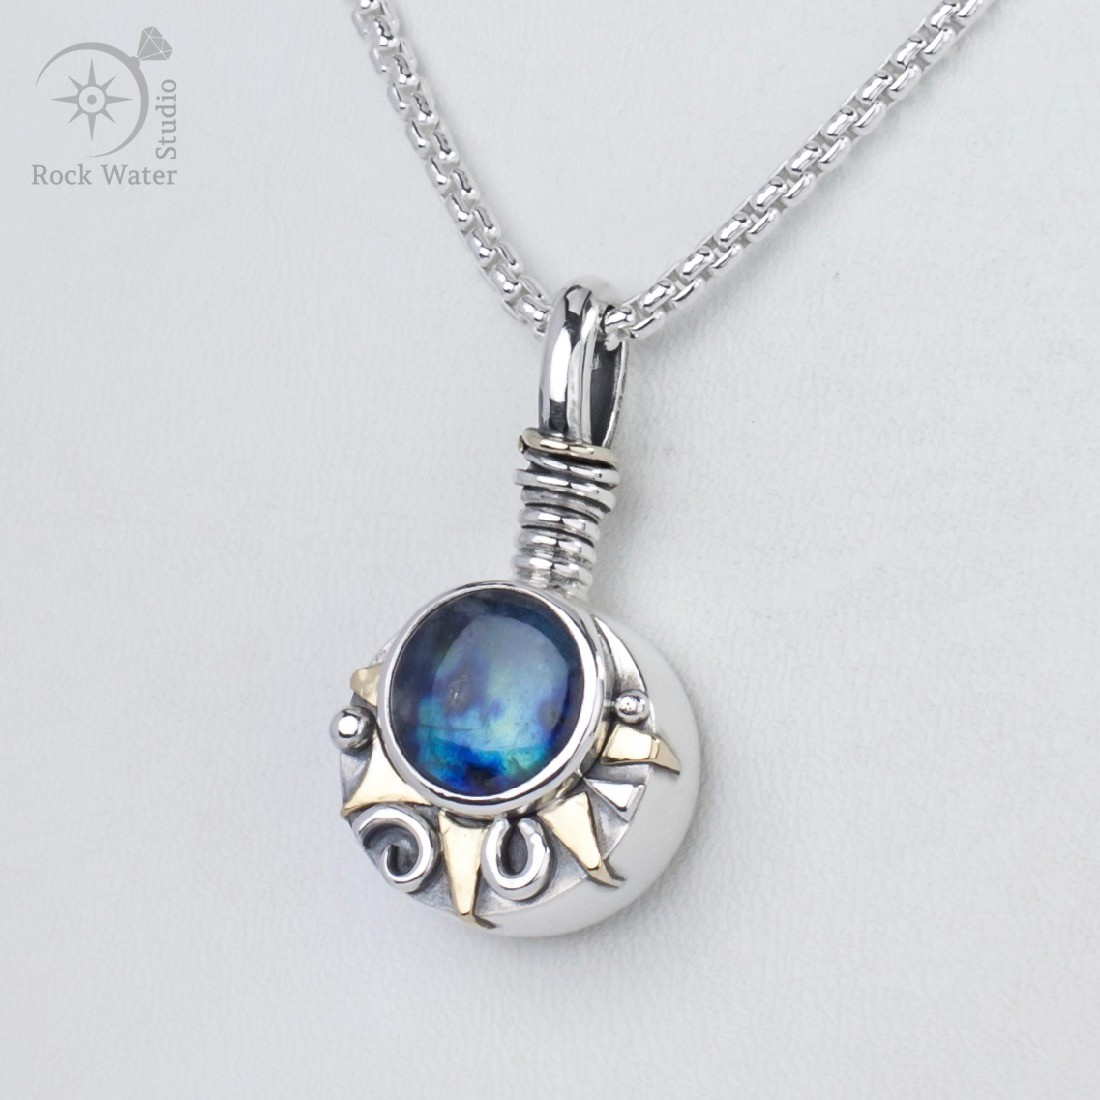 Aurora sunburst working compass necklace